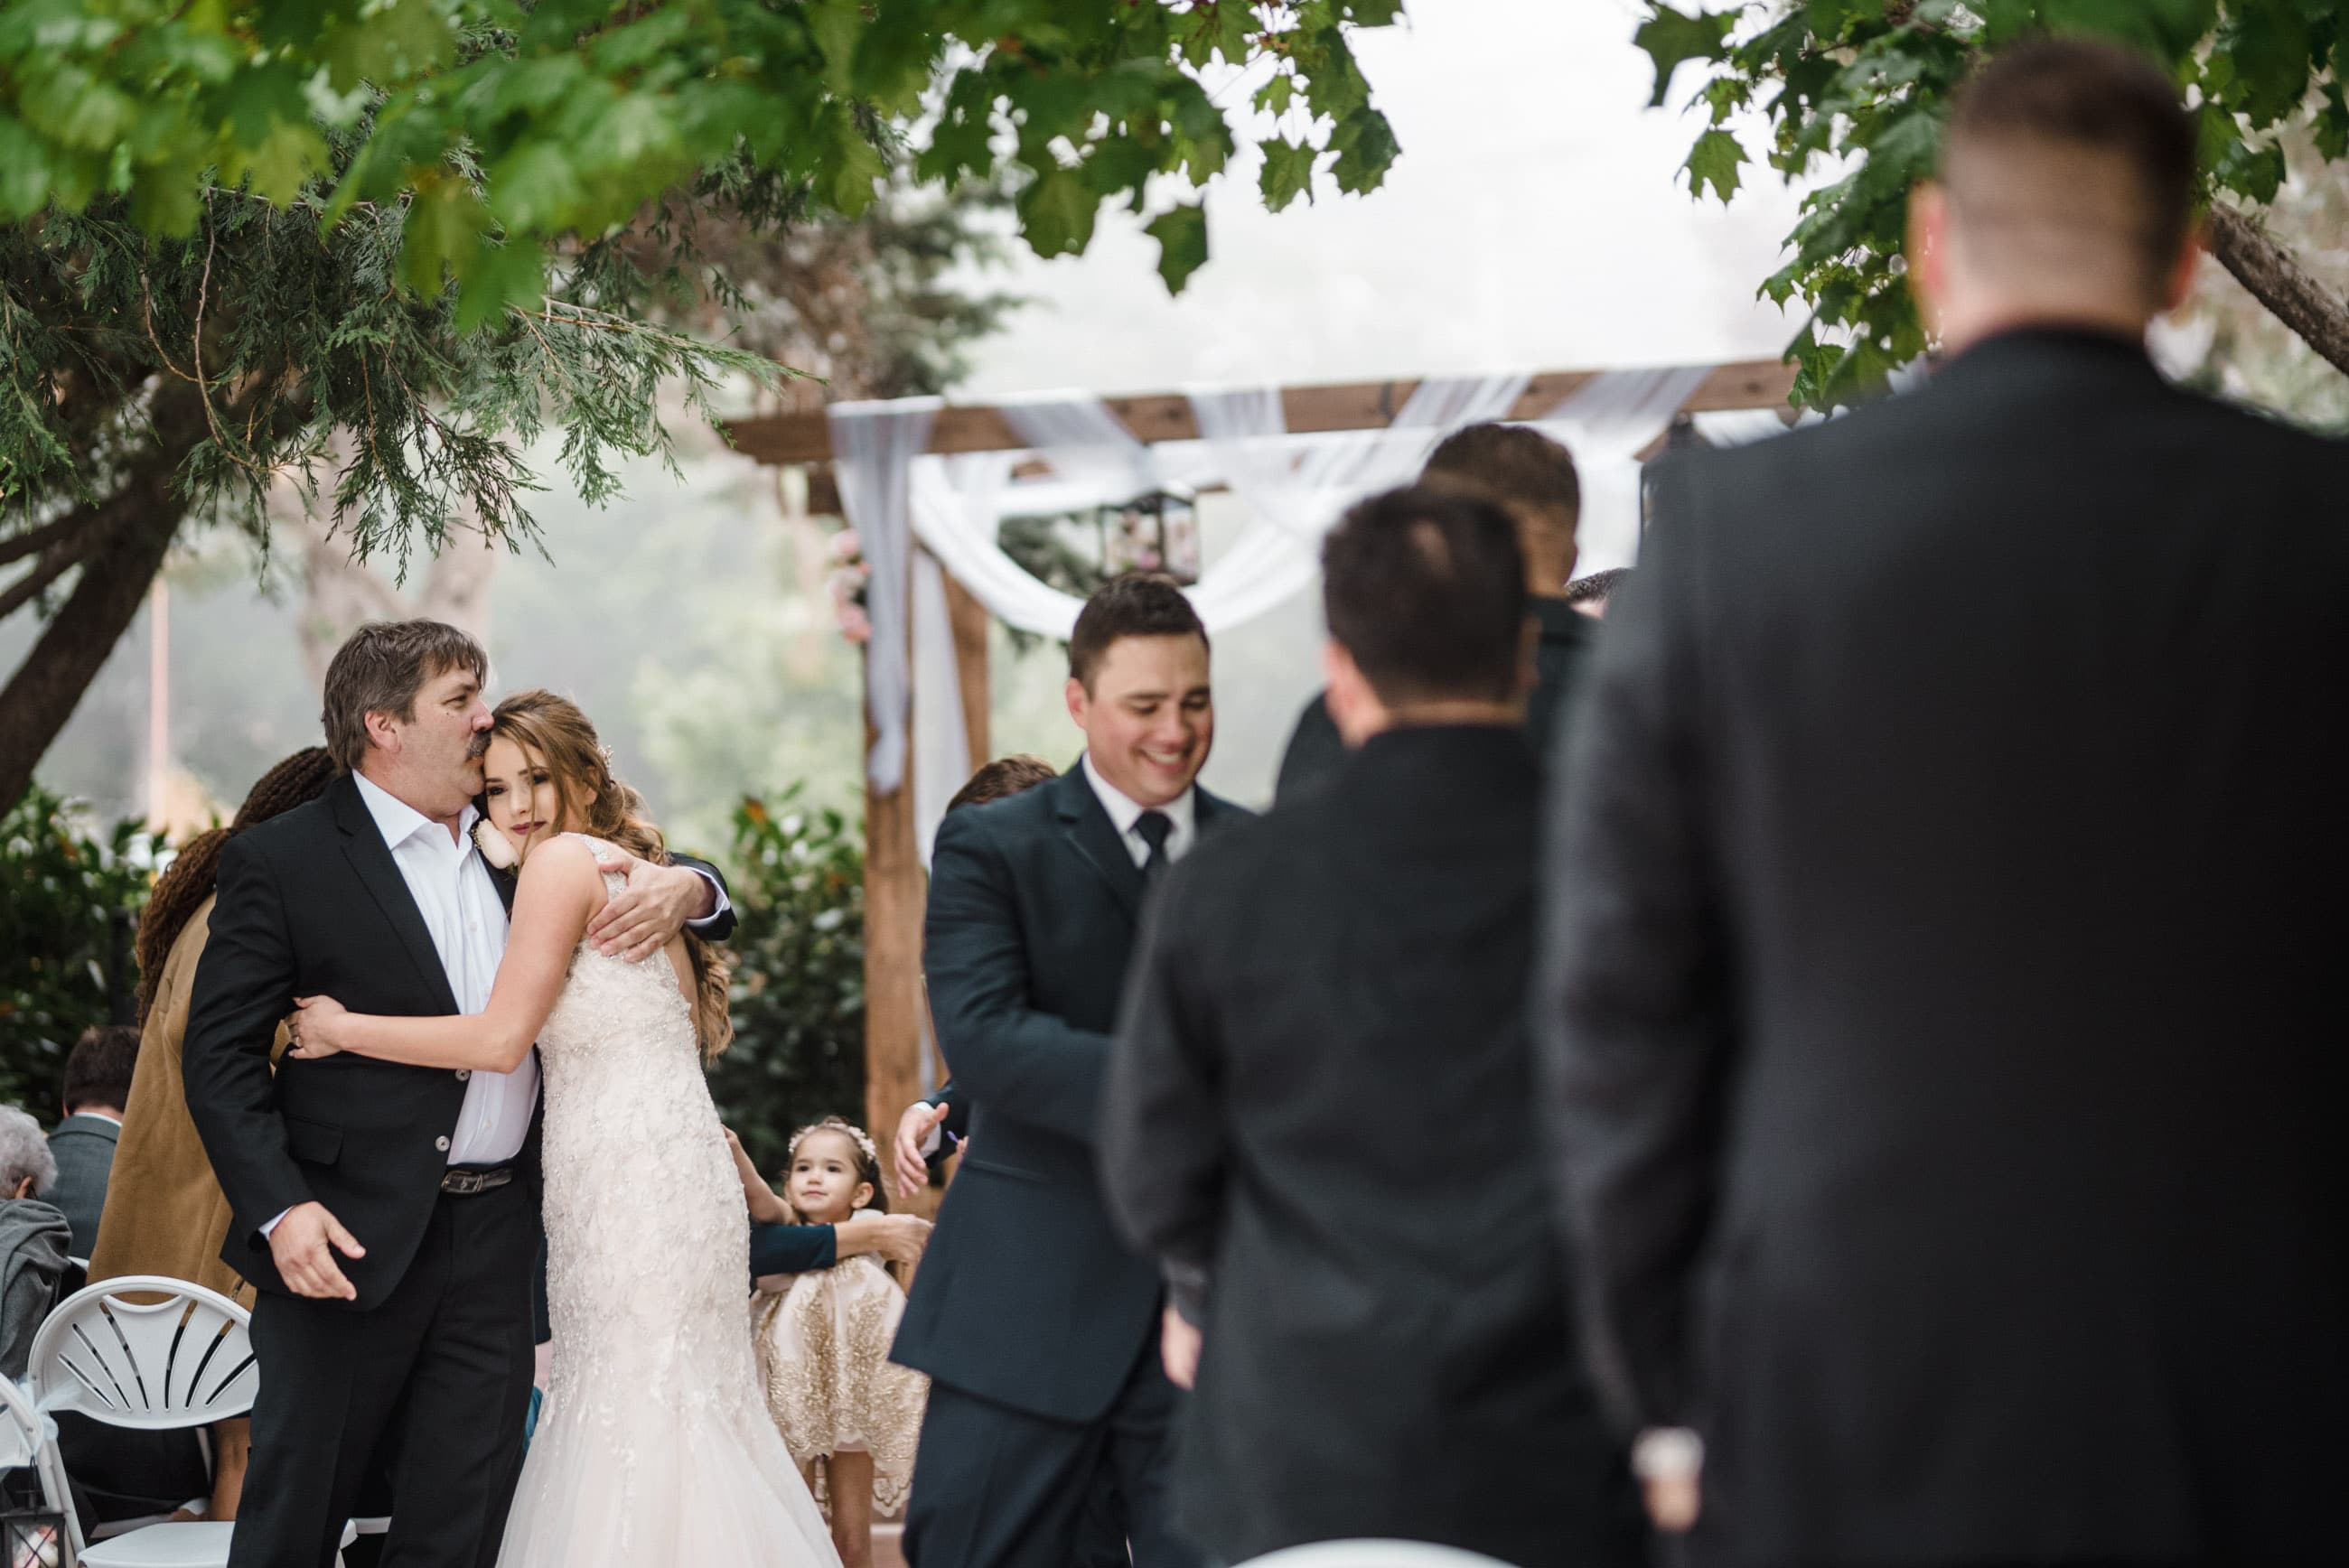 Audrey + Thomas Lake Arrowhead Wedding 29